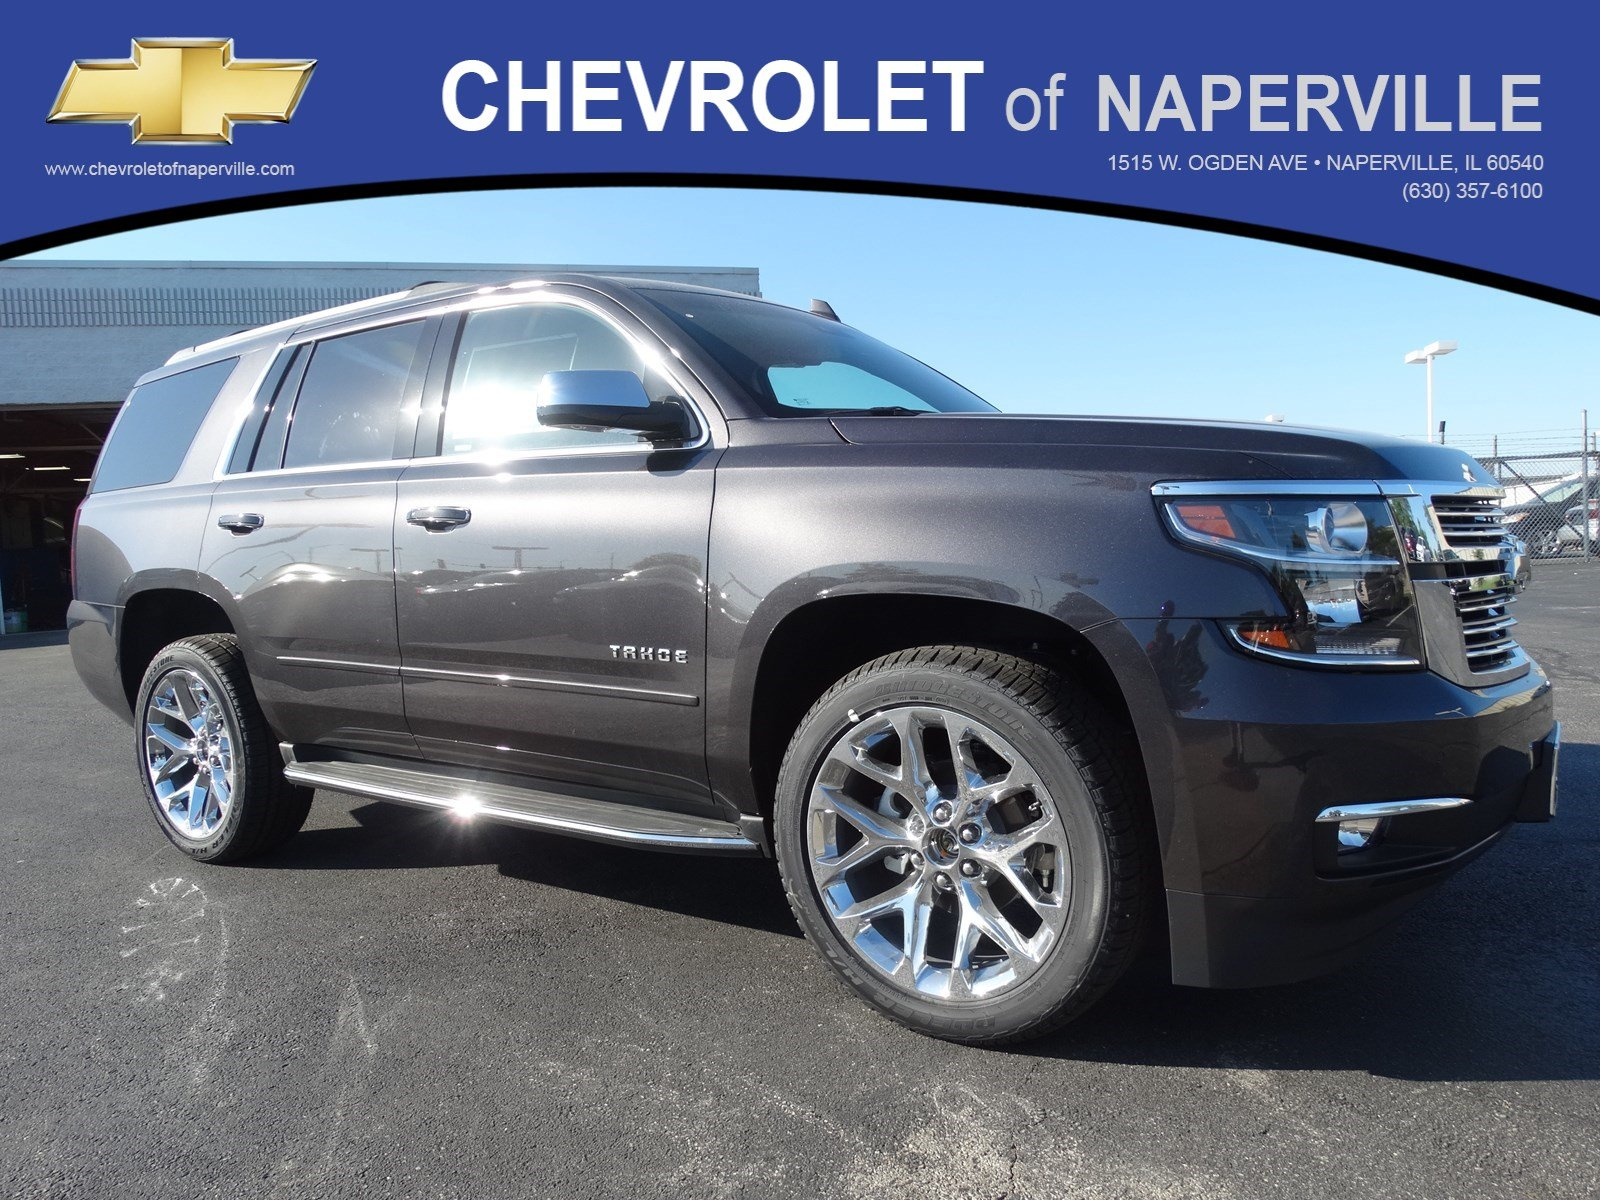 new 2017 chevrolet tahoe premier sport utility in naperville t6429 chevrolet of naperville. Black Bedroom Furniture Sets. Home Design Ideas